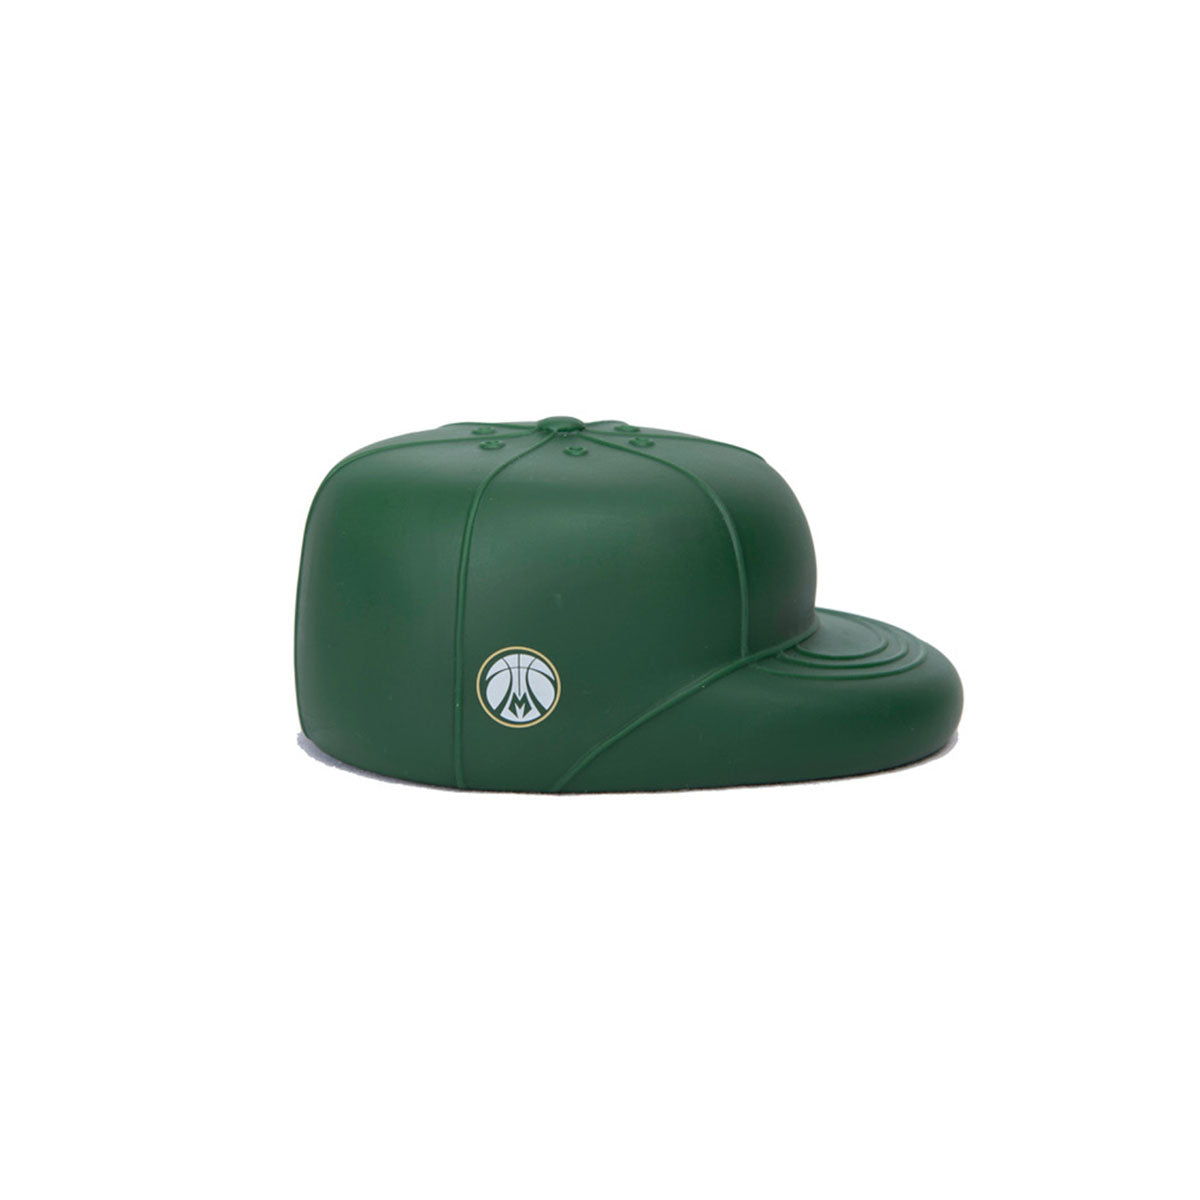 Nap Cap - NBA - Milwaukee Bucks - PlayCap Chew Toy